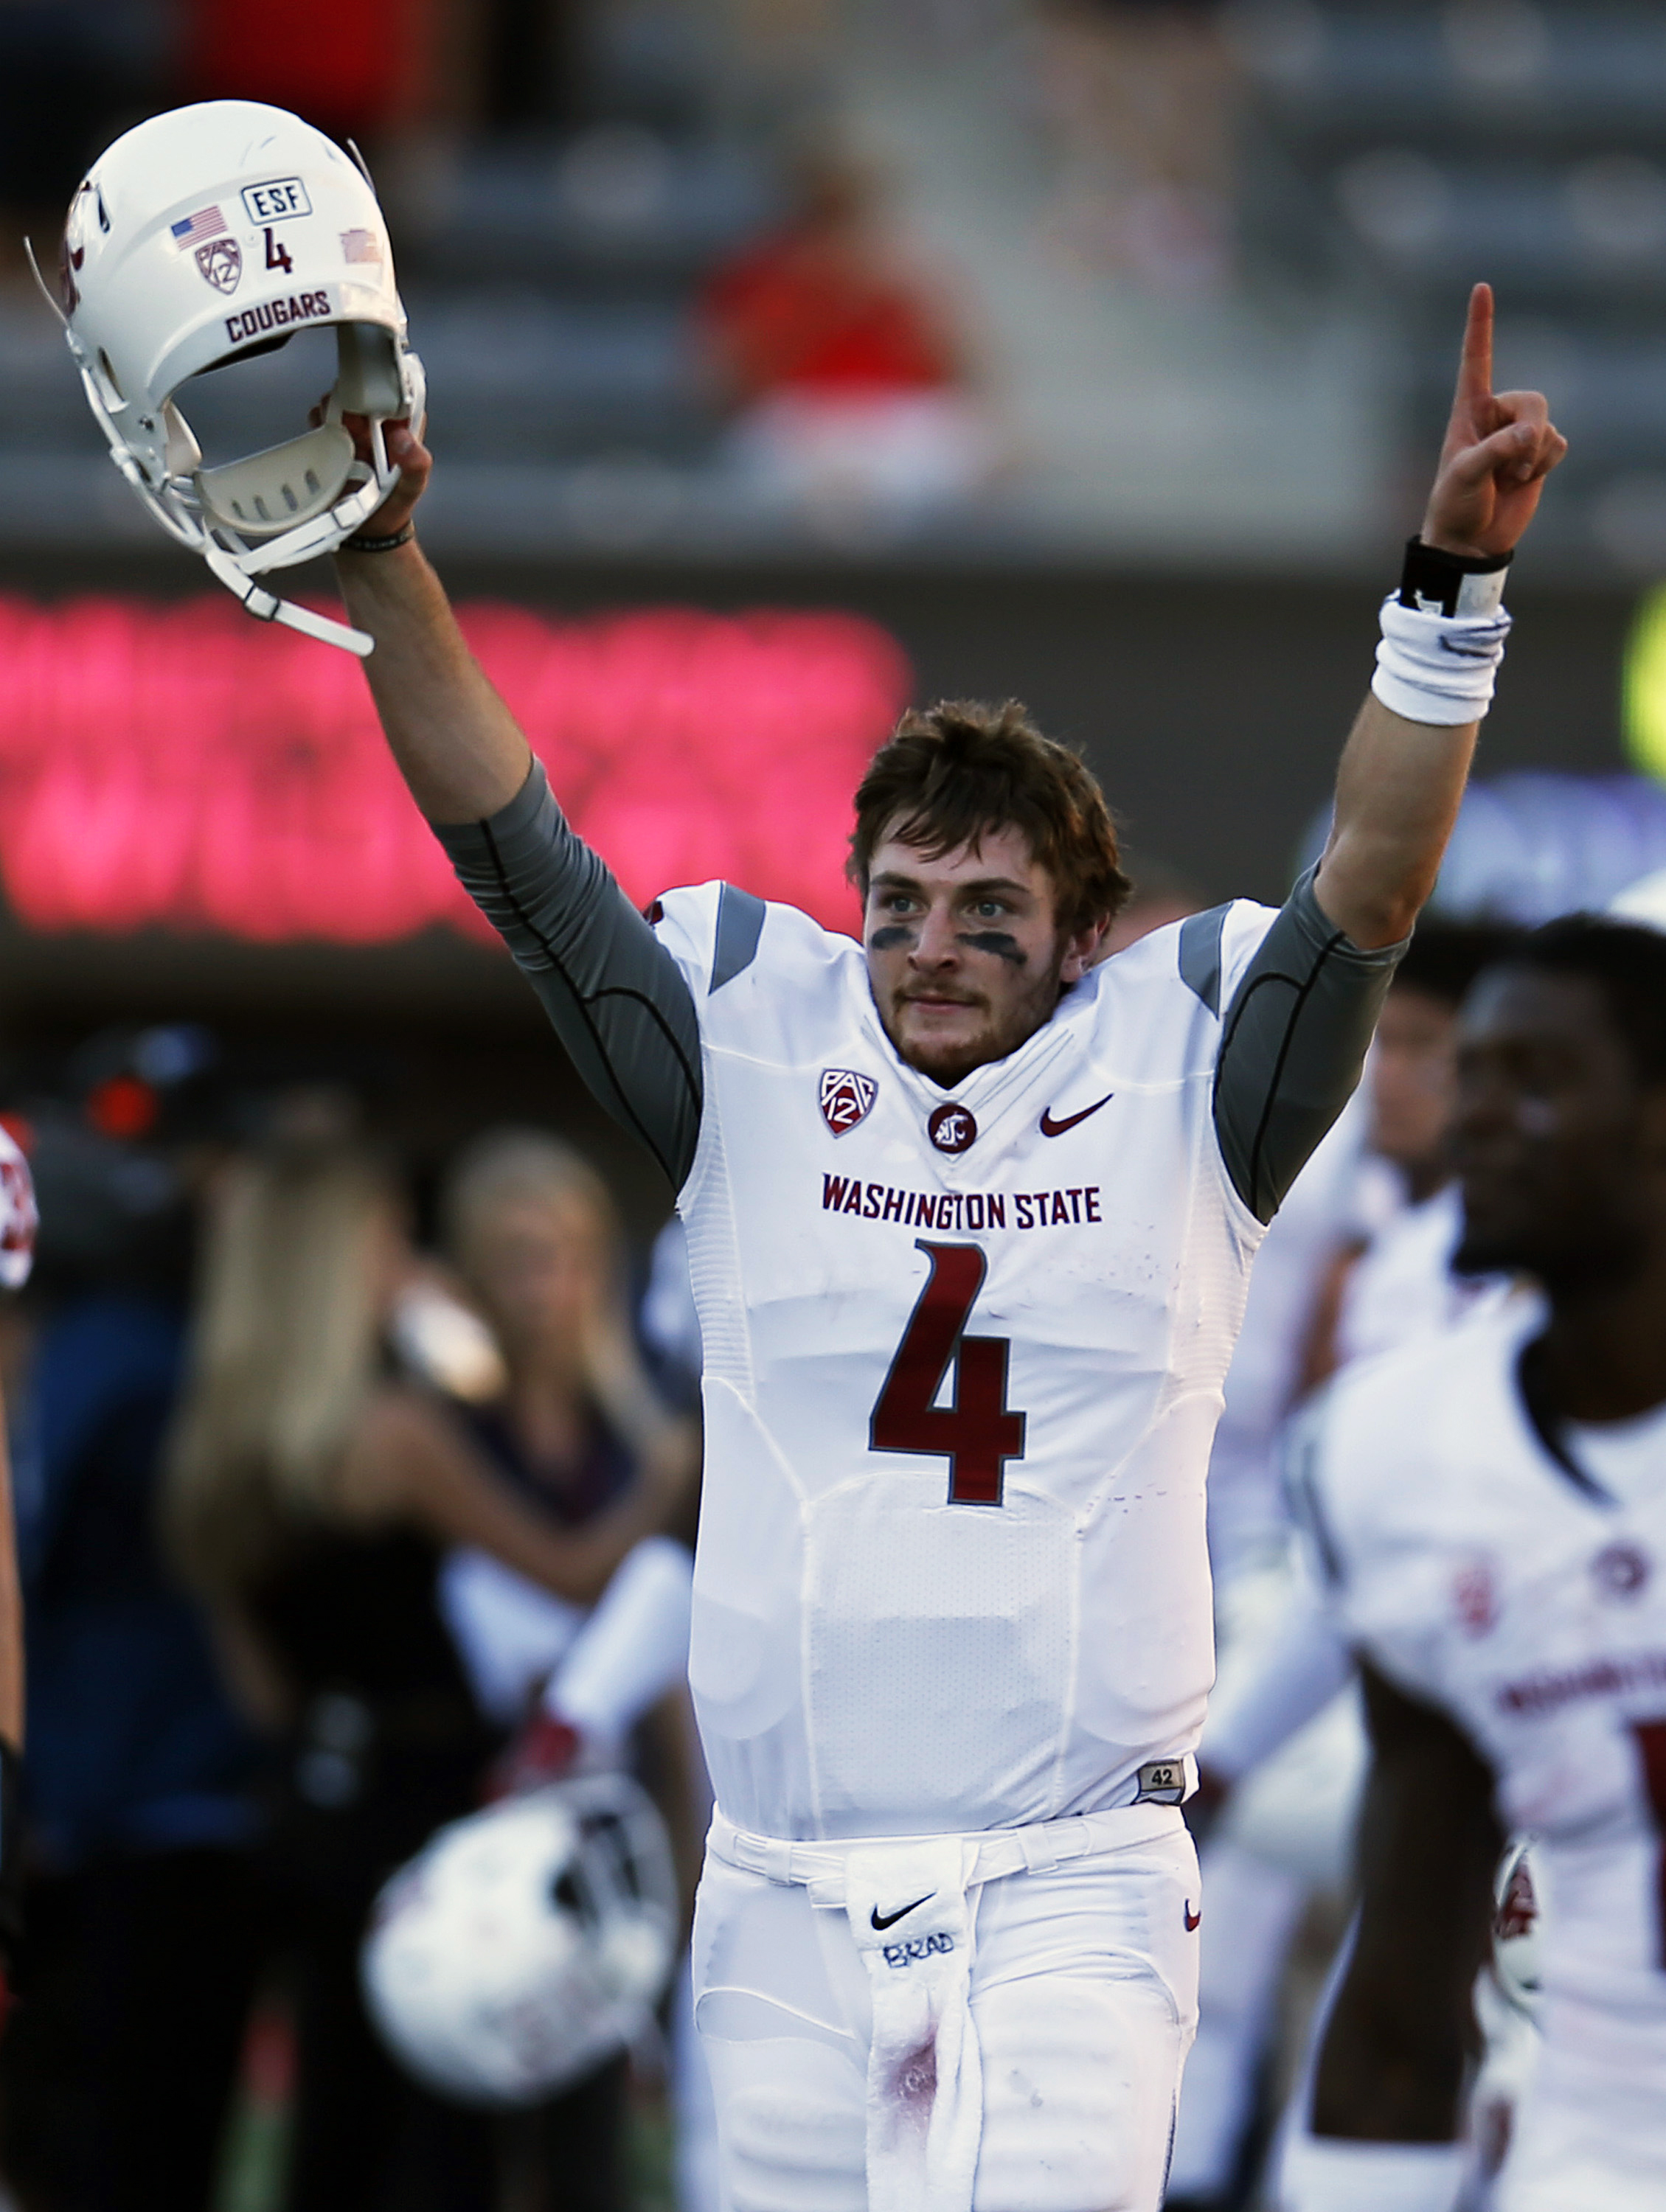 FILE - In this Oct. 24, 2015, file photo, Washington State quarterback Luke Falk celebrates after defeating Arizona 45-42 during an NCAA college football game in Tucson, Ariz. Quarterback Luke Falk has thrown for 4,067 yards and a team record 35 touchdown